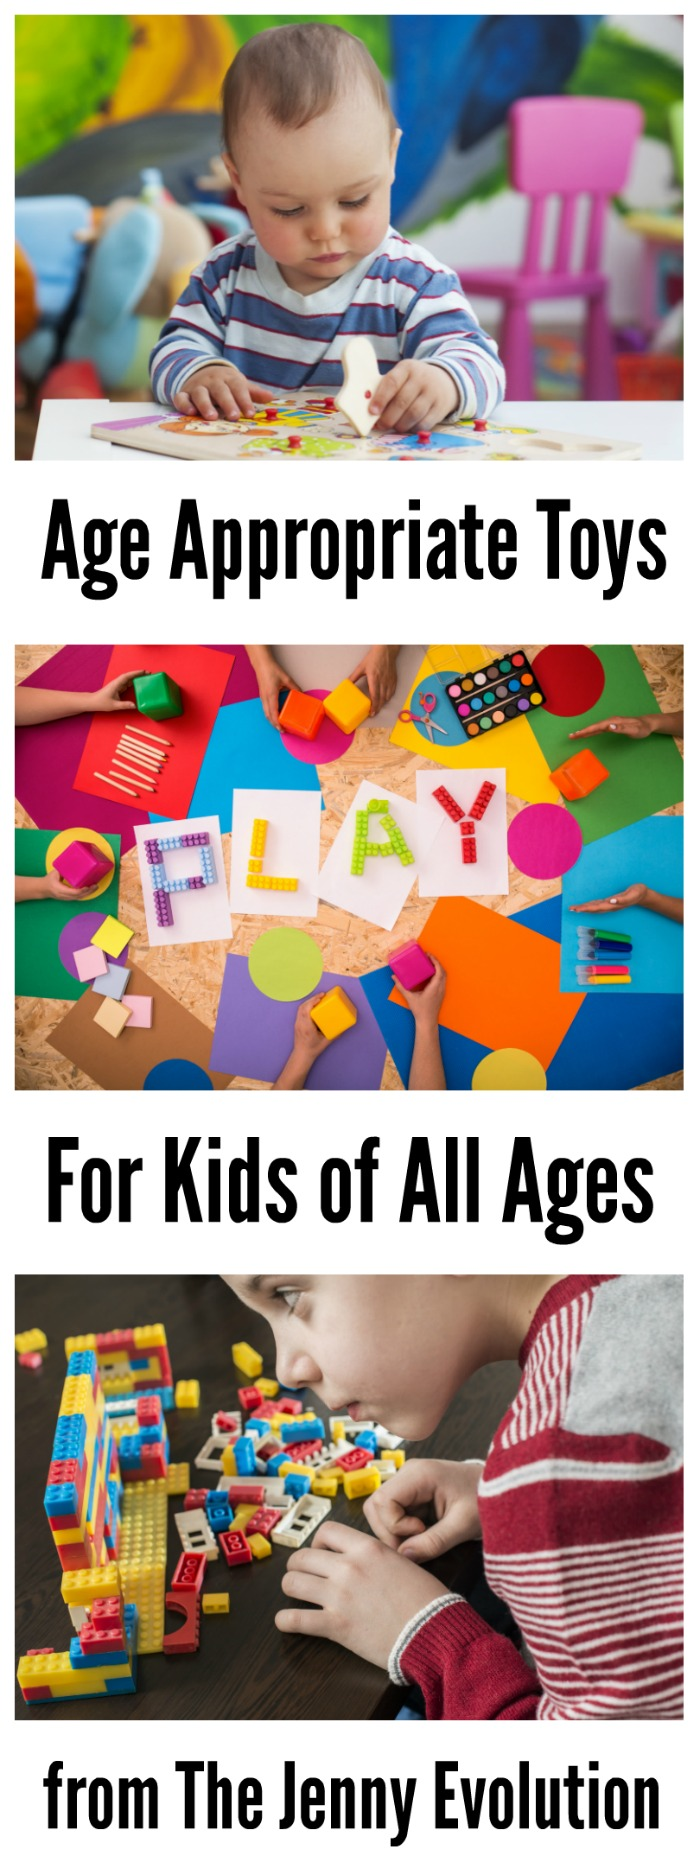 Age Appropriate Toys for All Ages